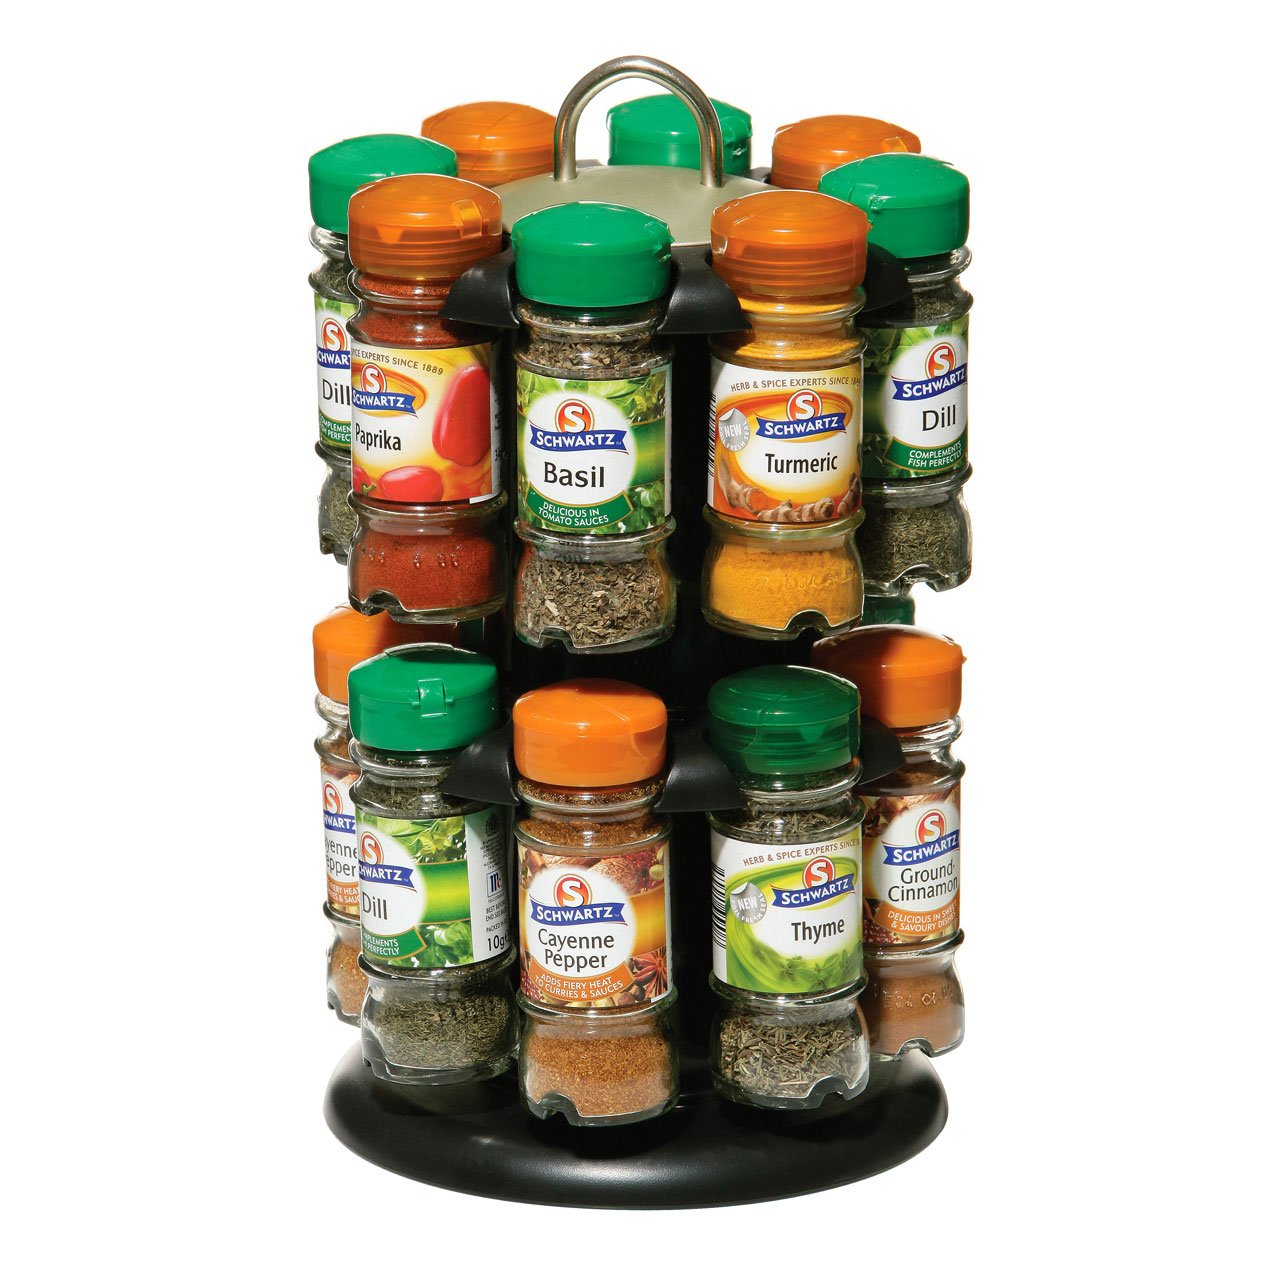 Premier Housewares Revolving Spice Rack with Schwartz Spices (Spice Rack 16) PRIME FURNISHING